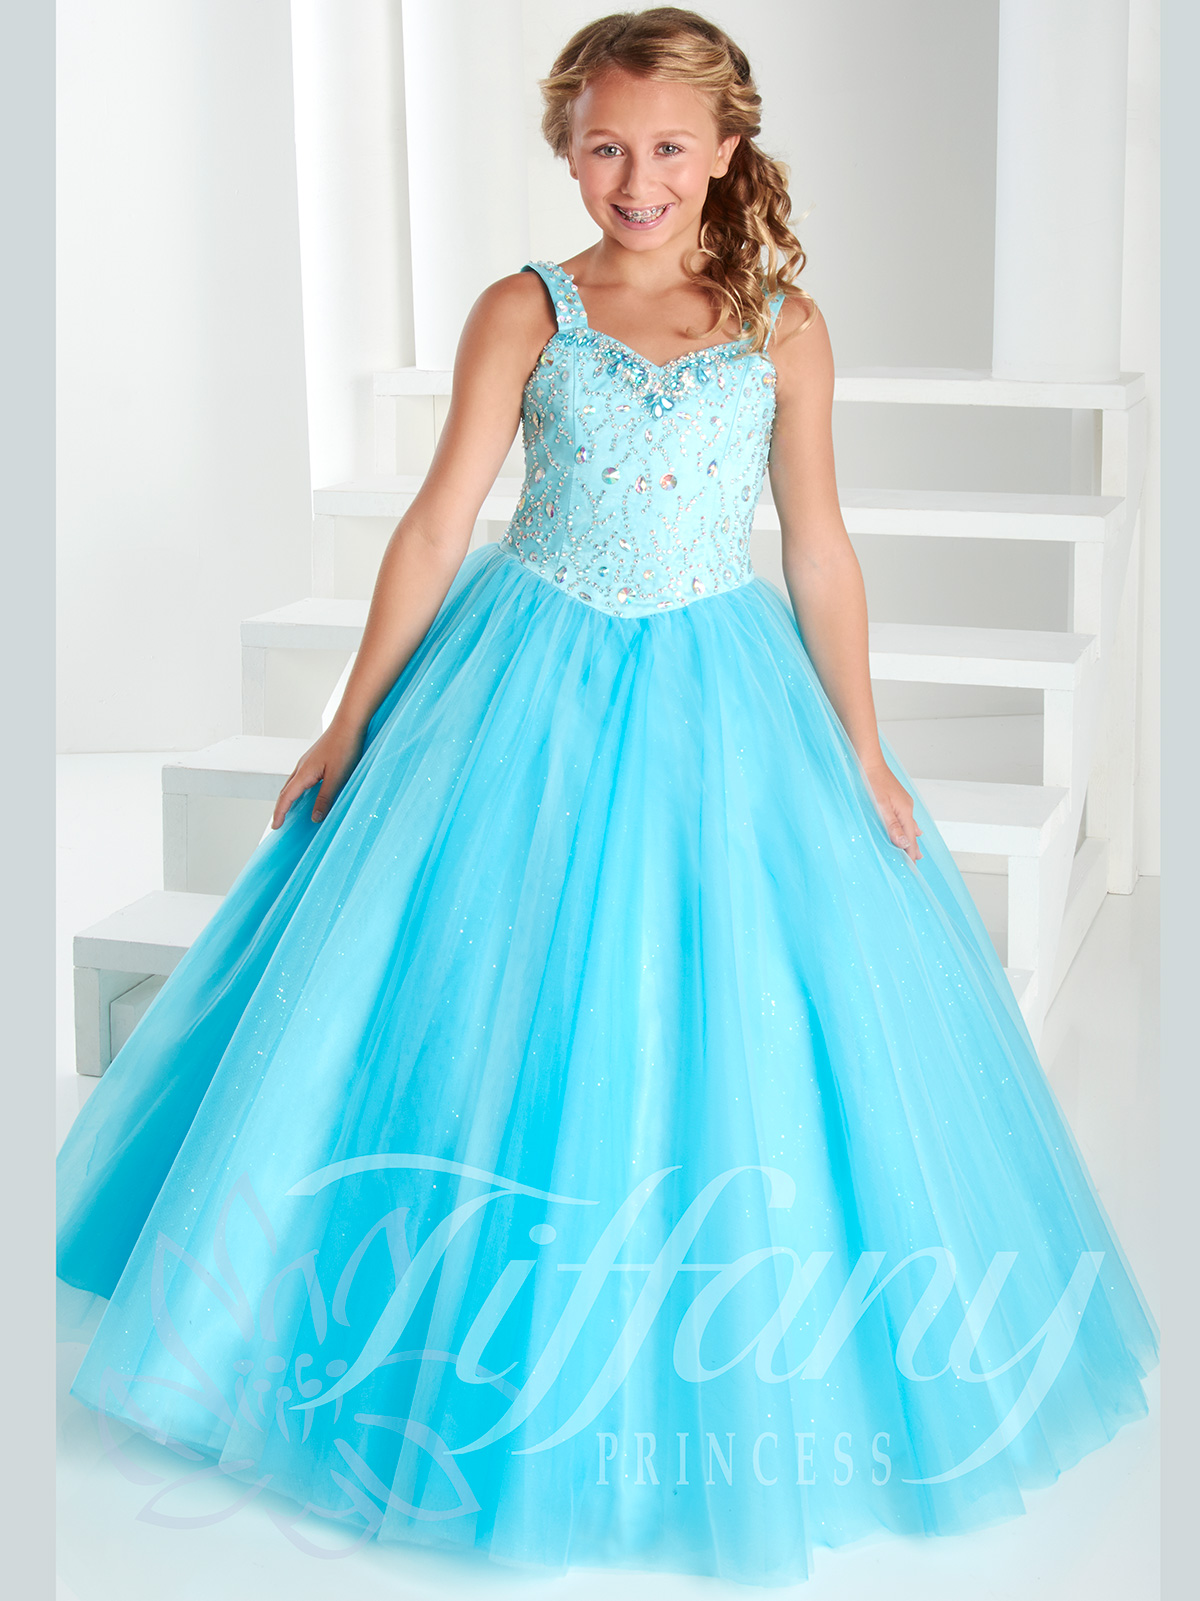 Tiffany Princess Rhinestone Bodice Pageant Gown 13409|PageantDesigns.com